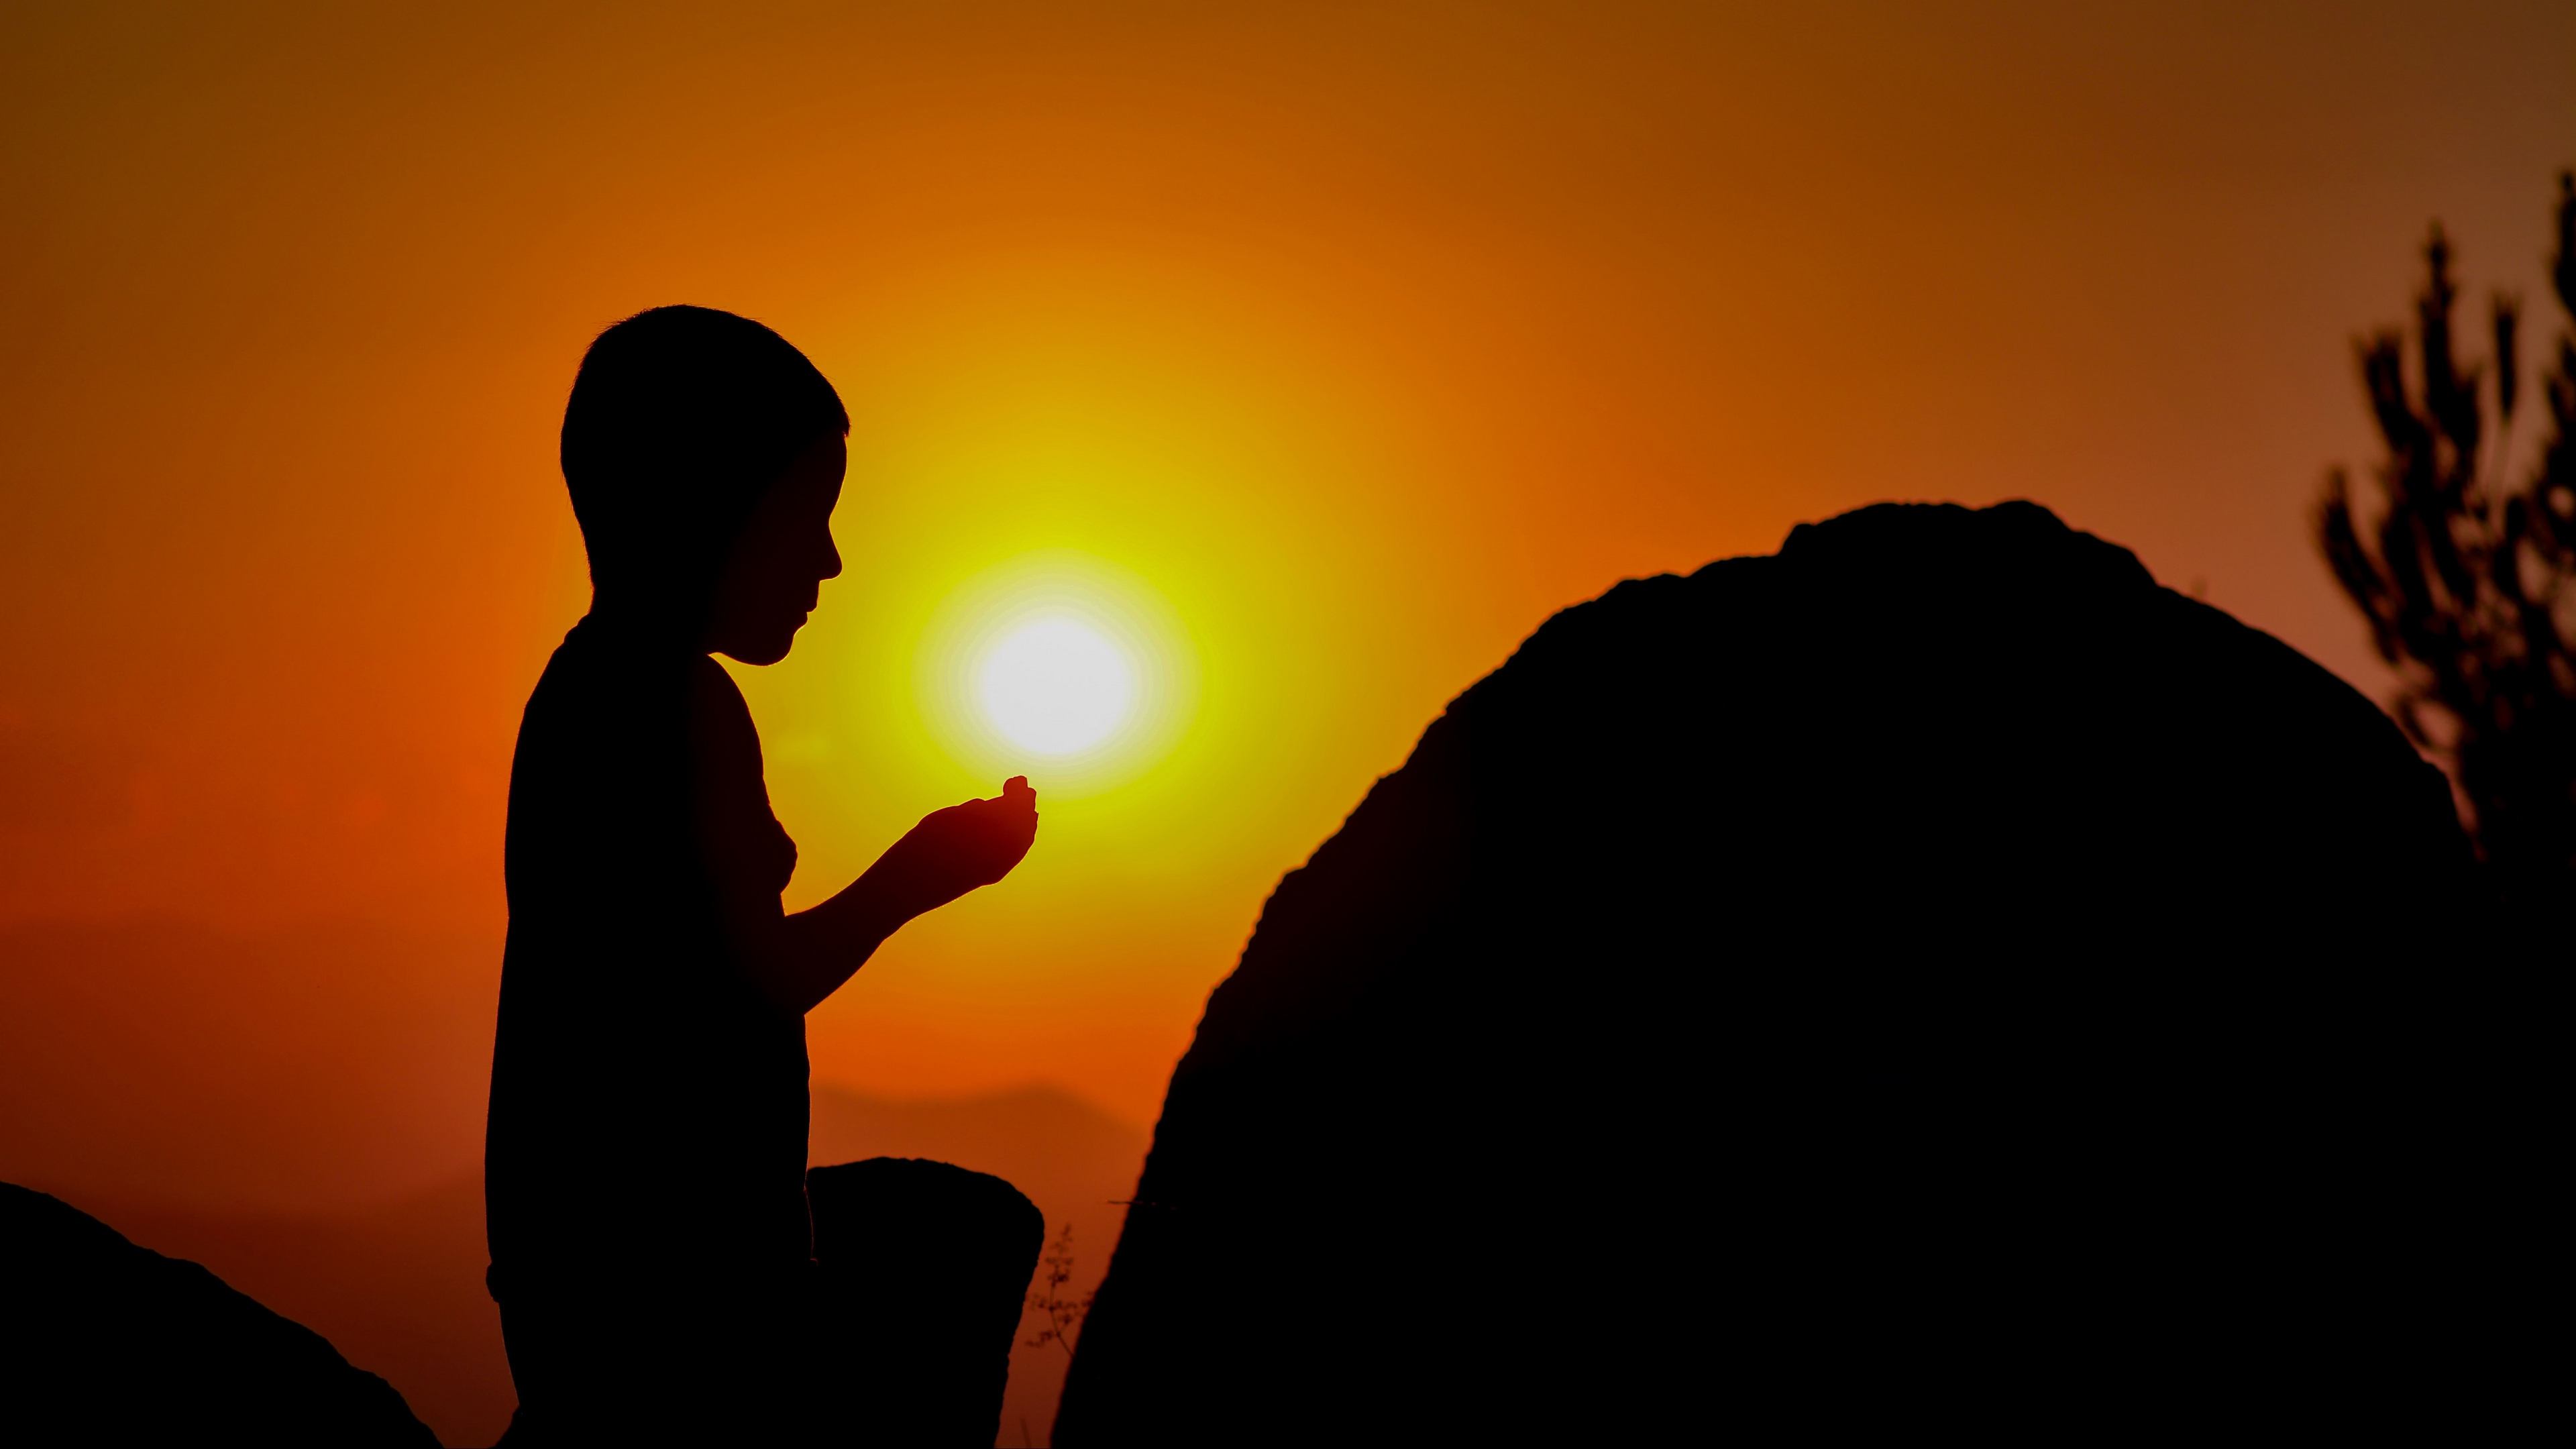 child prayer silhouette 4k 1540575386 - child, prayer, silhouette 4k - Silhouette, Prayer, child